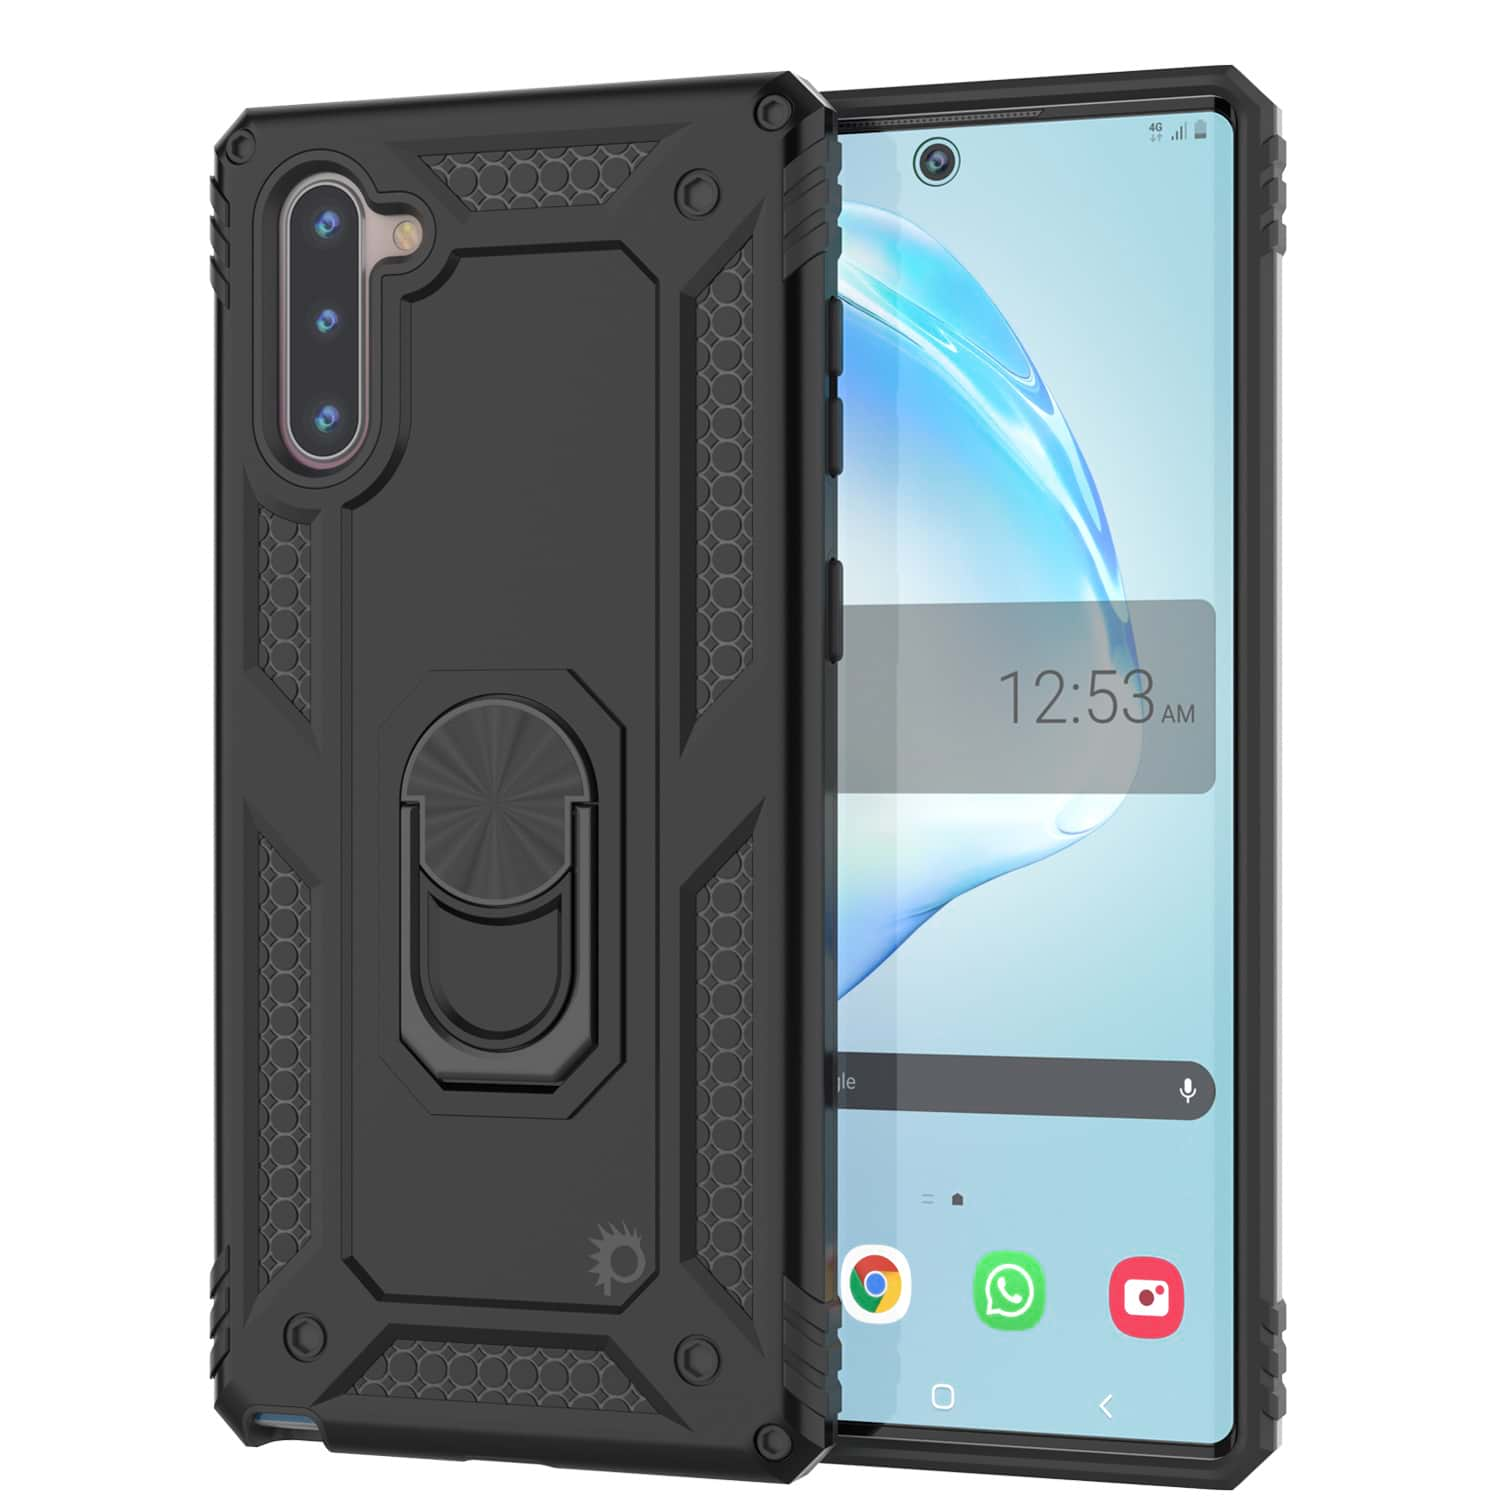 Galaxy Note 10 Punkcase Armor Military Case Black